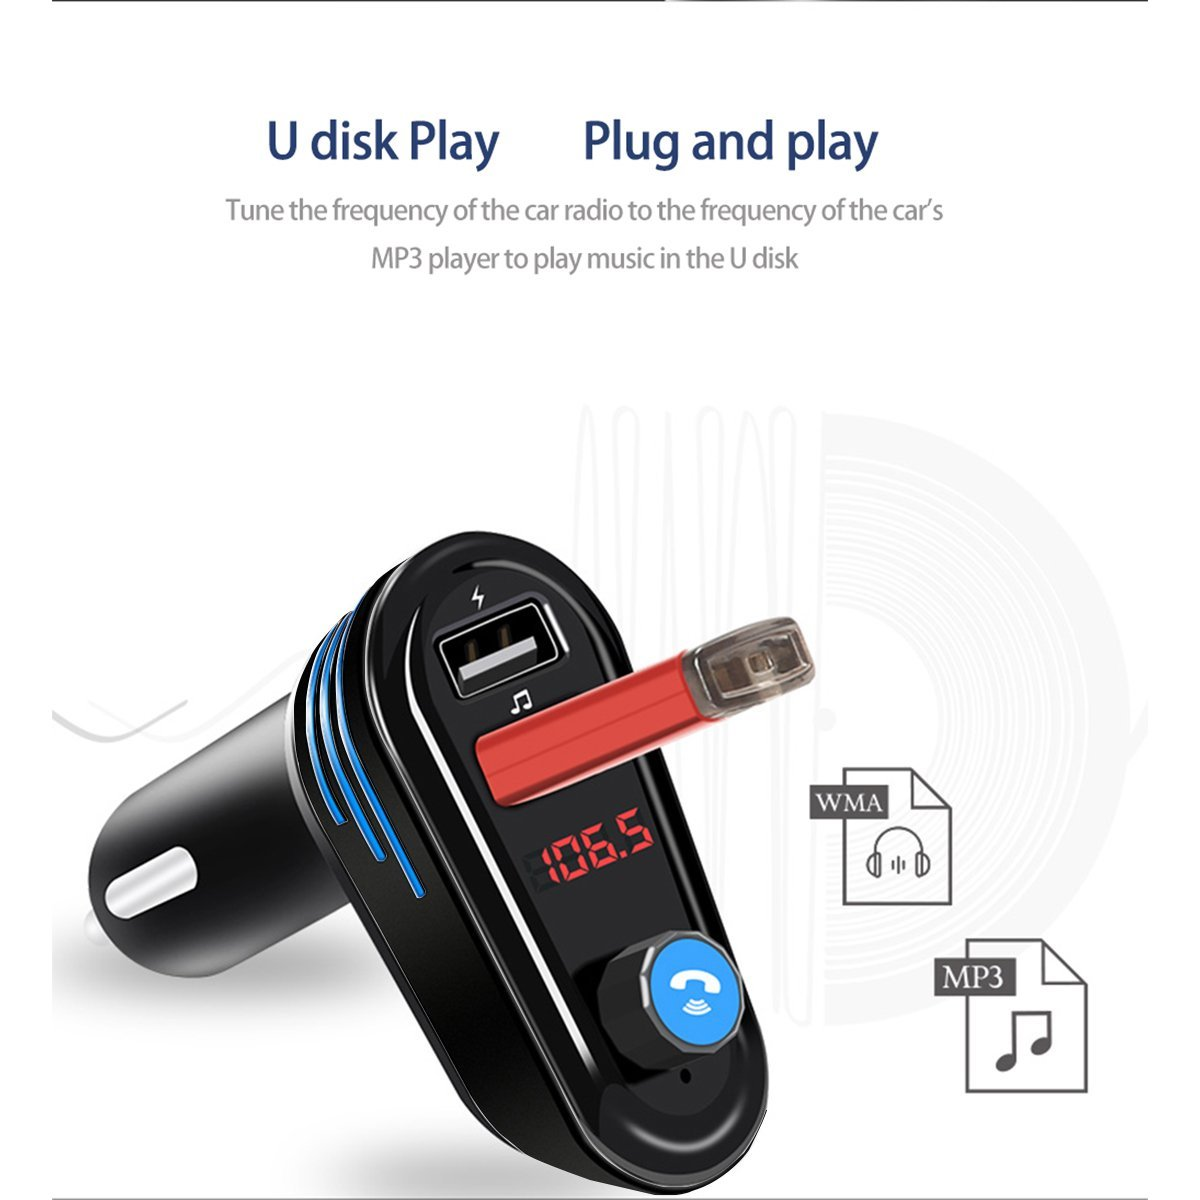 154c71eff22 Multifunction Wireless Car Bluetooth MP3 music Player FM Transmitter  Adapter with Hands Free Calling Support Dual USB Charge A-in Car MP3 Players  from ...